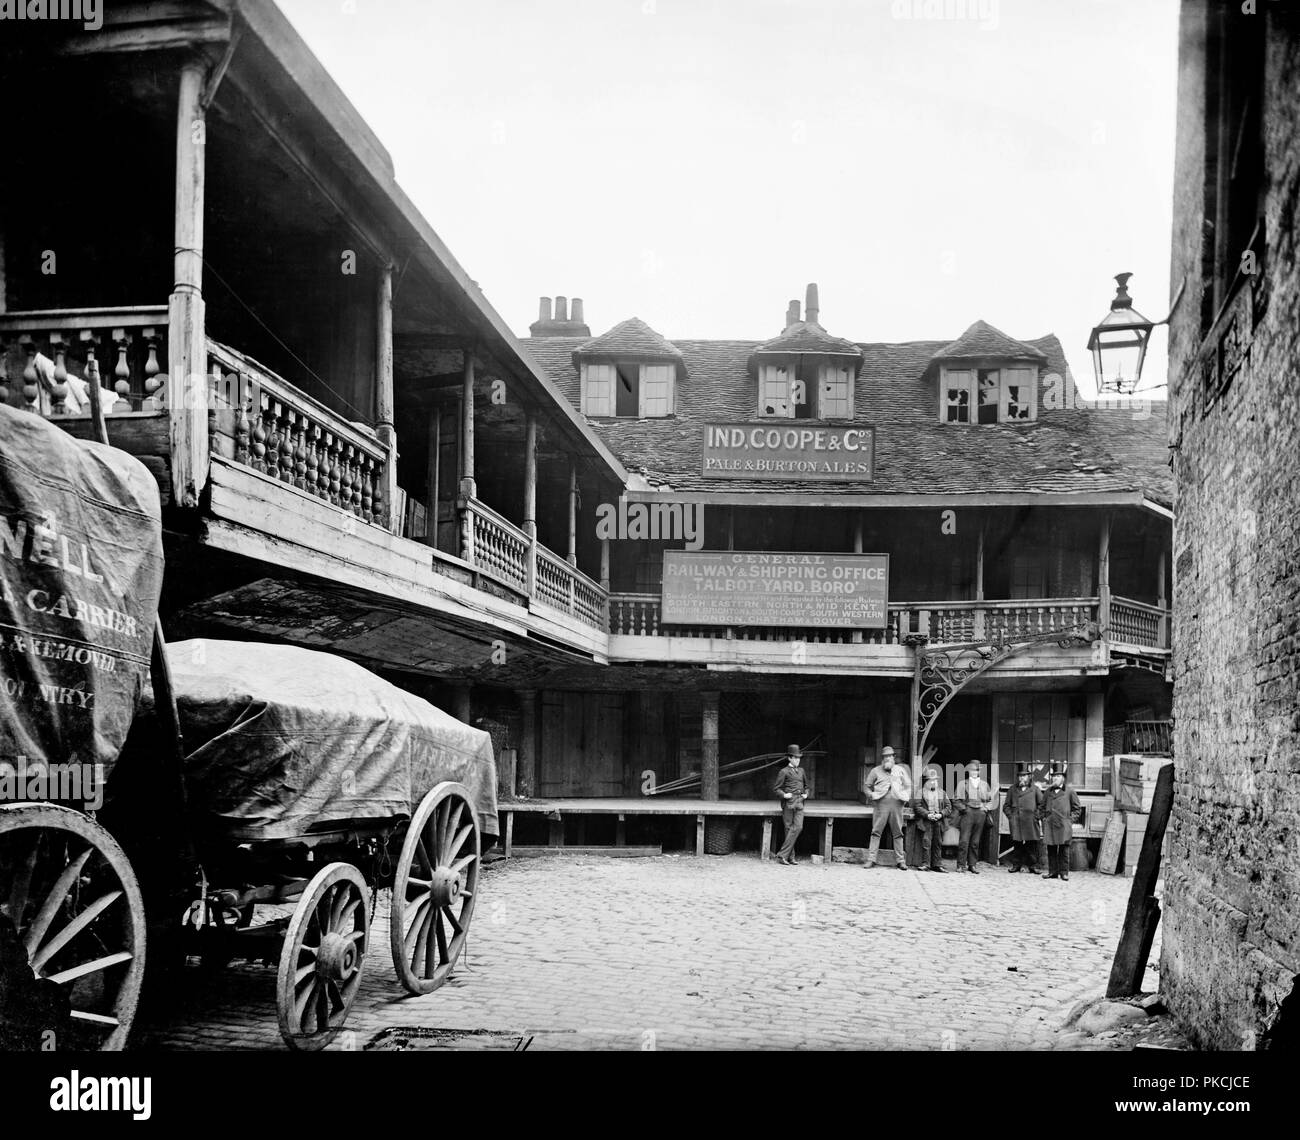 Tabard or Talbot Inn, Talbot Yard, Southwark, London, c1870-c1873. A view of the courtyard with a wagon in the foreground and a group of people. The Tabard was an established inn during the Middle Ages and features in Chaucer's The Canterbury Tales, written in the late 14th century. The pilgims met here before setting out on their journey to Canterbury Cathedral. The inn burnt down in 1676 and it is the rebuilt one (which may be based on the original building) that is pictured here. As a coaching inn it suffered from the coming of the railways. Renamed the Talbot Inn, the buildings around the  - Stock Image